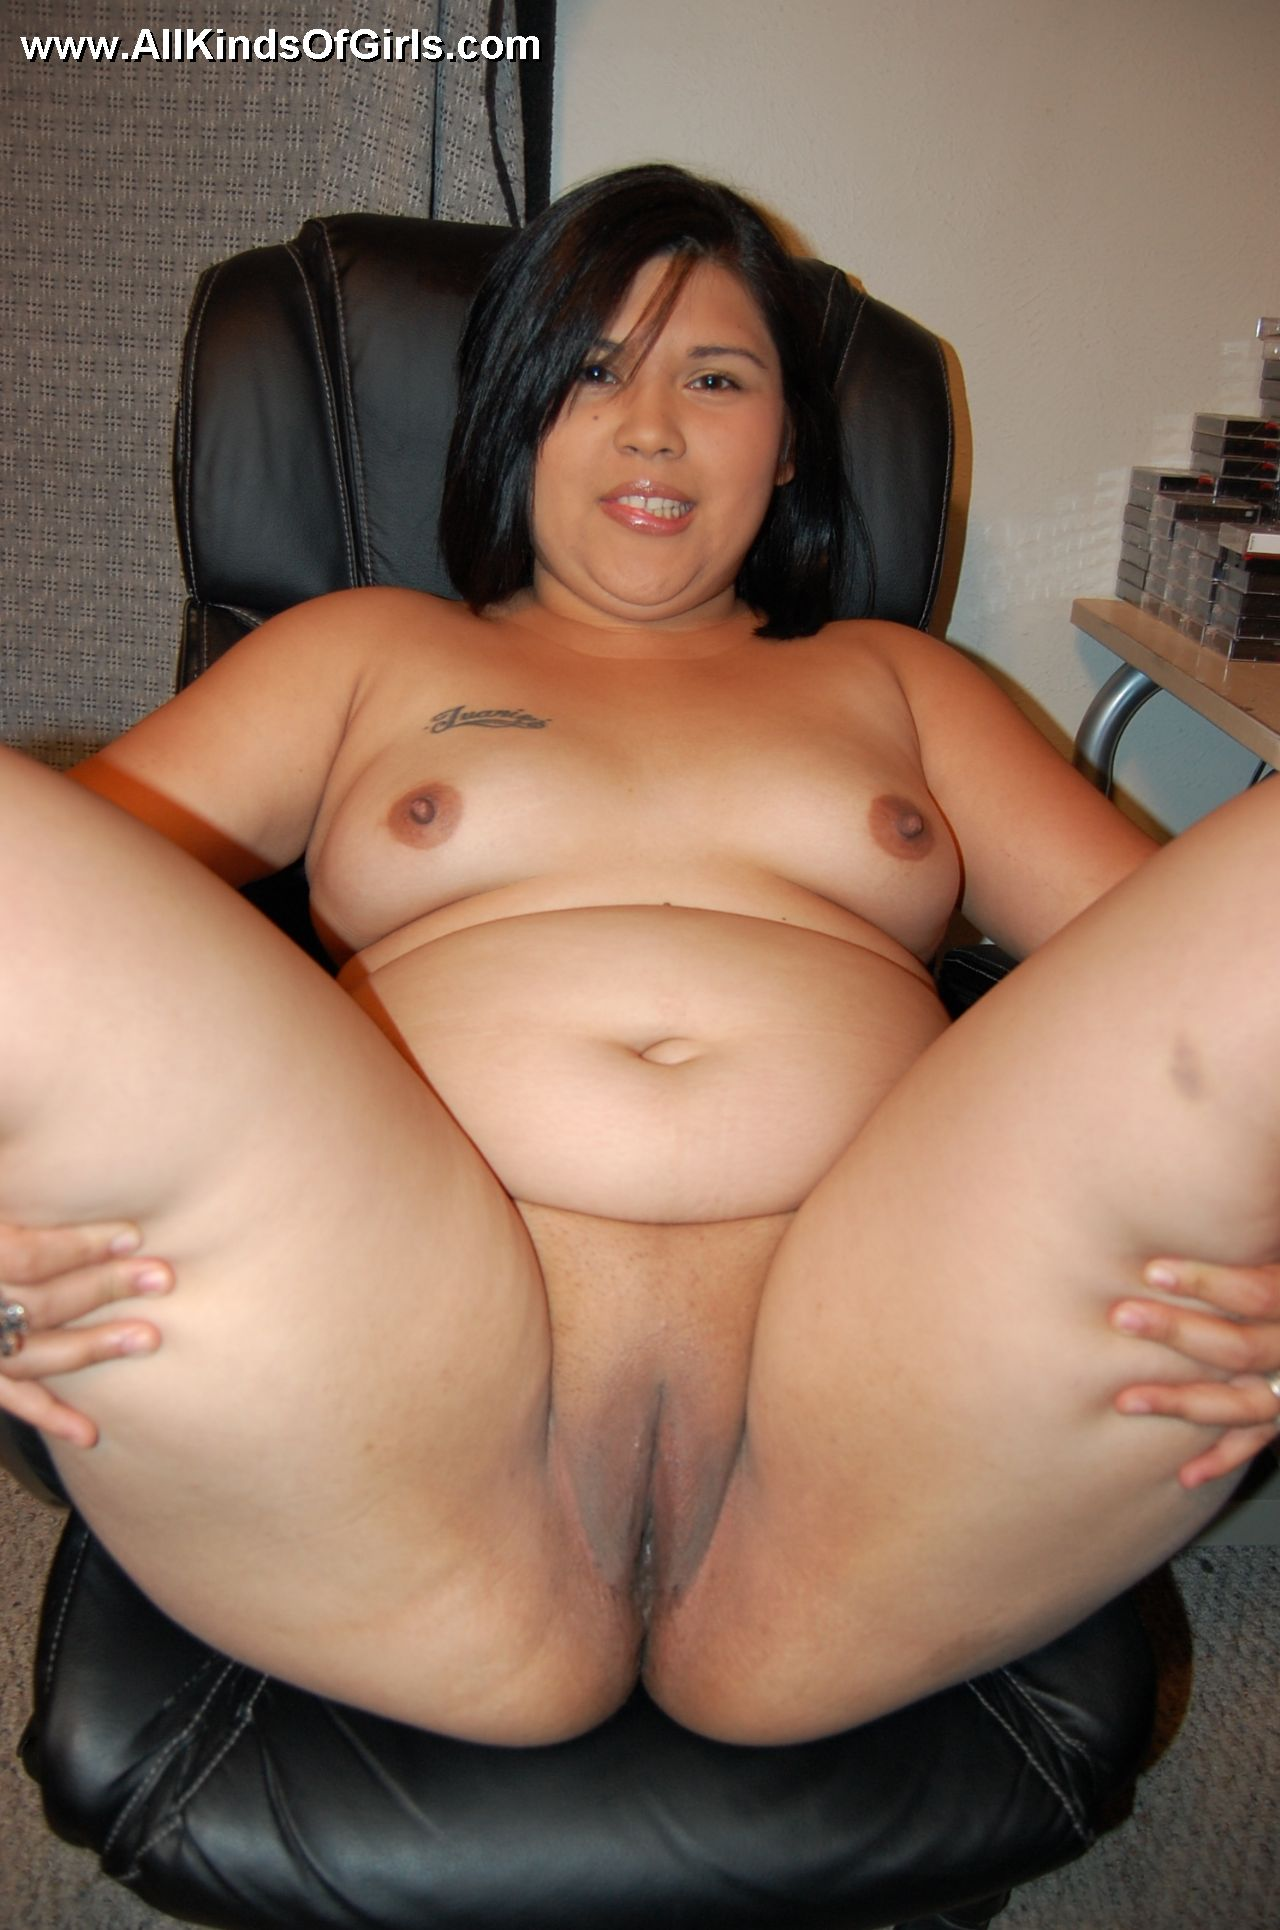 Asshole looks chubby mom sex smoking think she